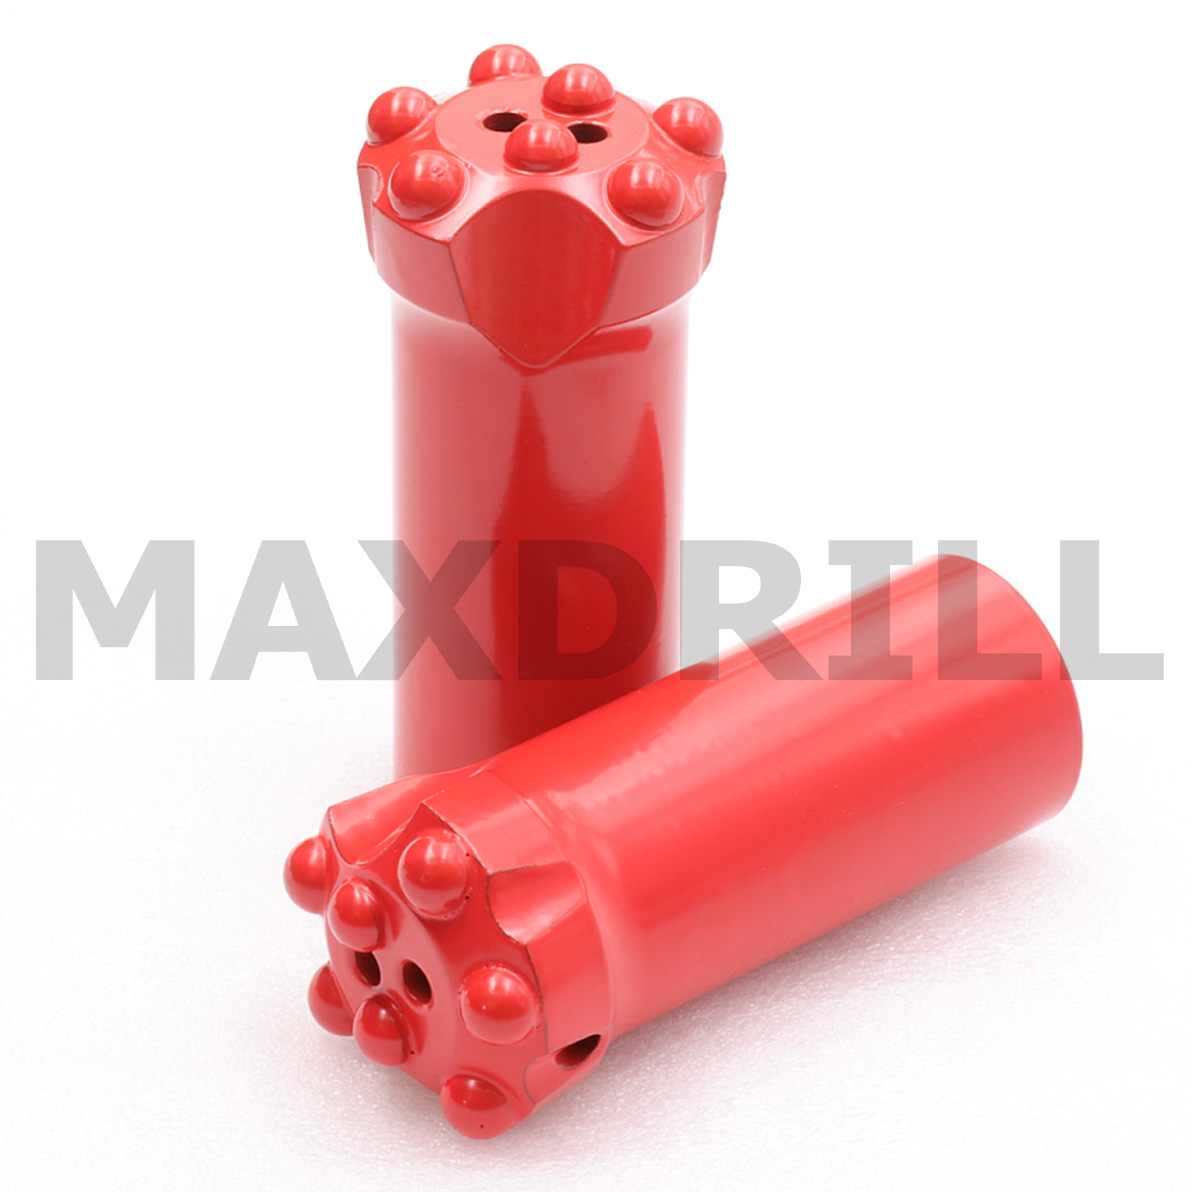 Maxdrill R32 51mm Button bit